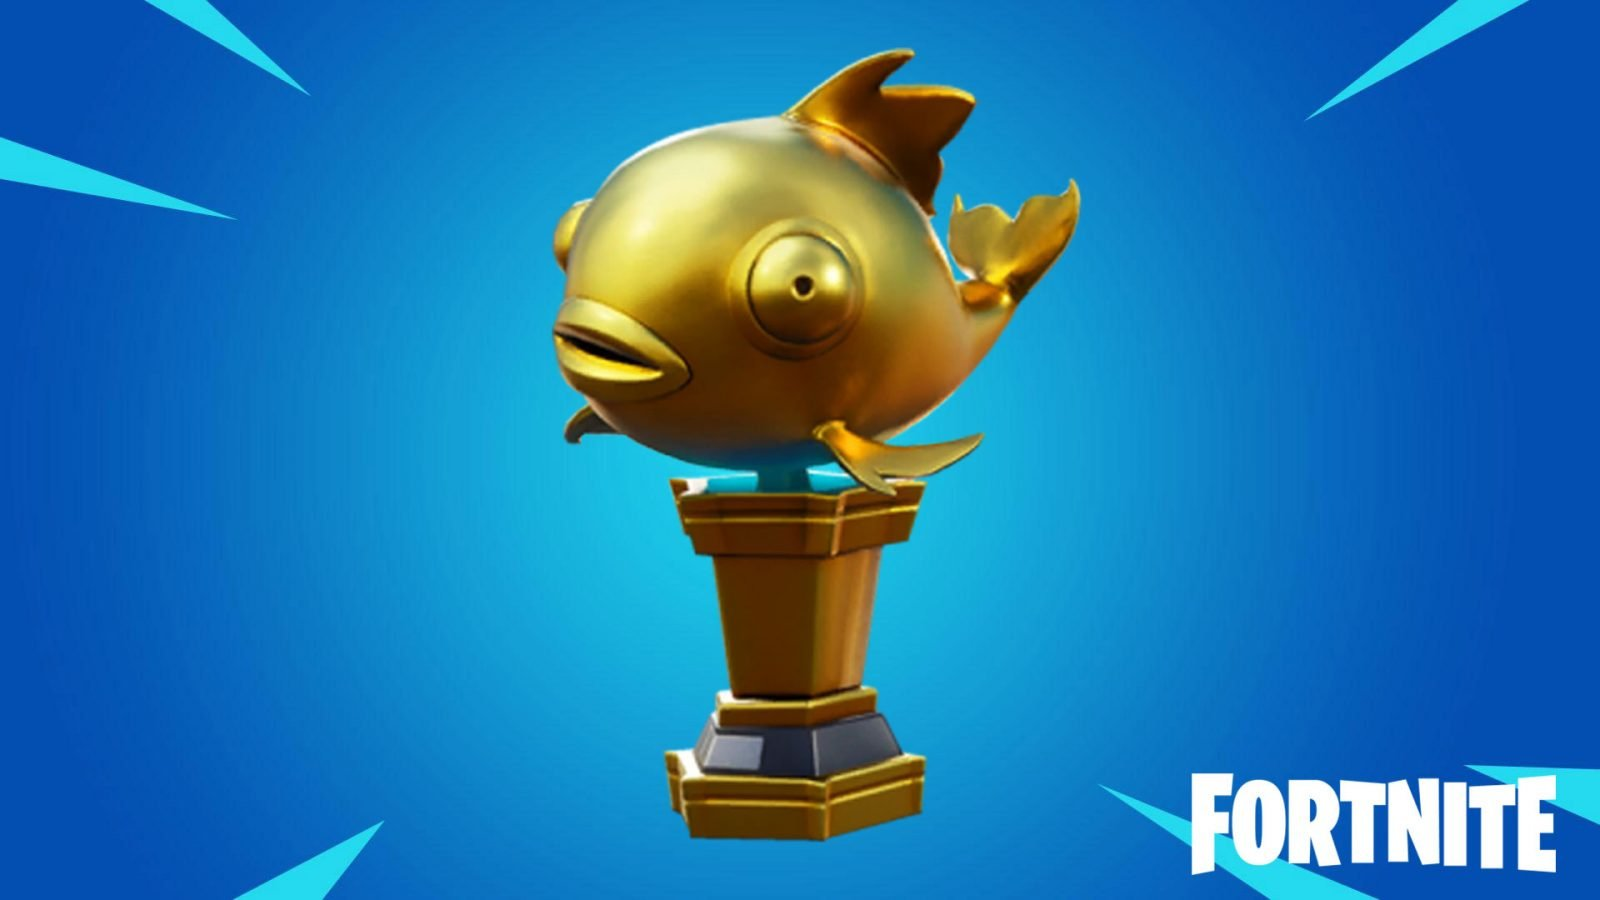 Fortnite Has Added An Ultra-Rare Golden Fish That Can Kill Opponents With One Hit